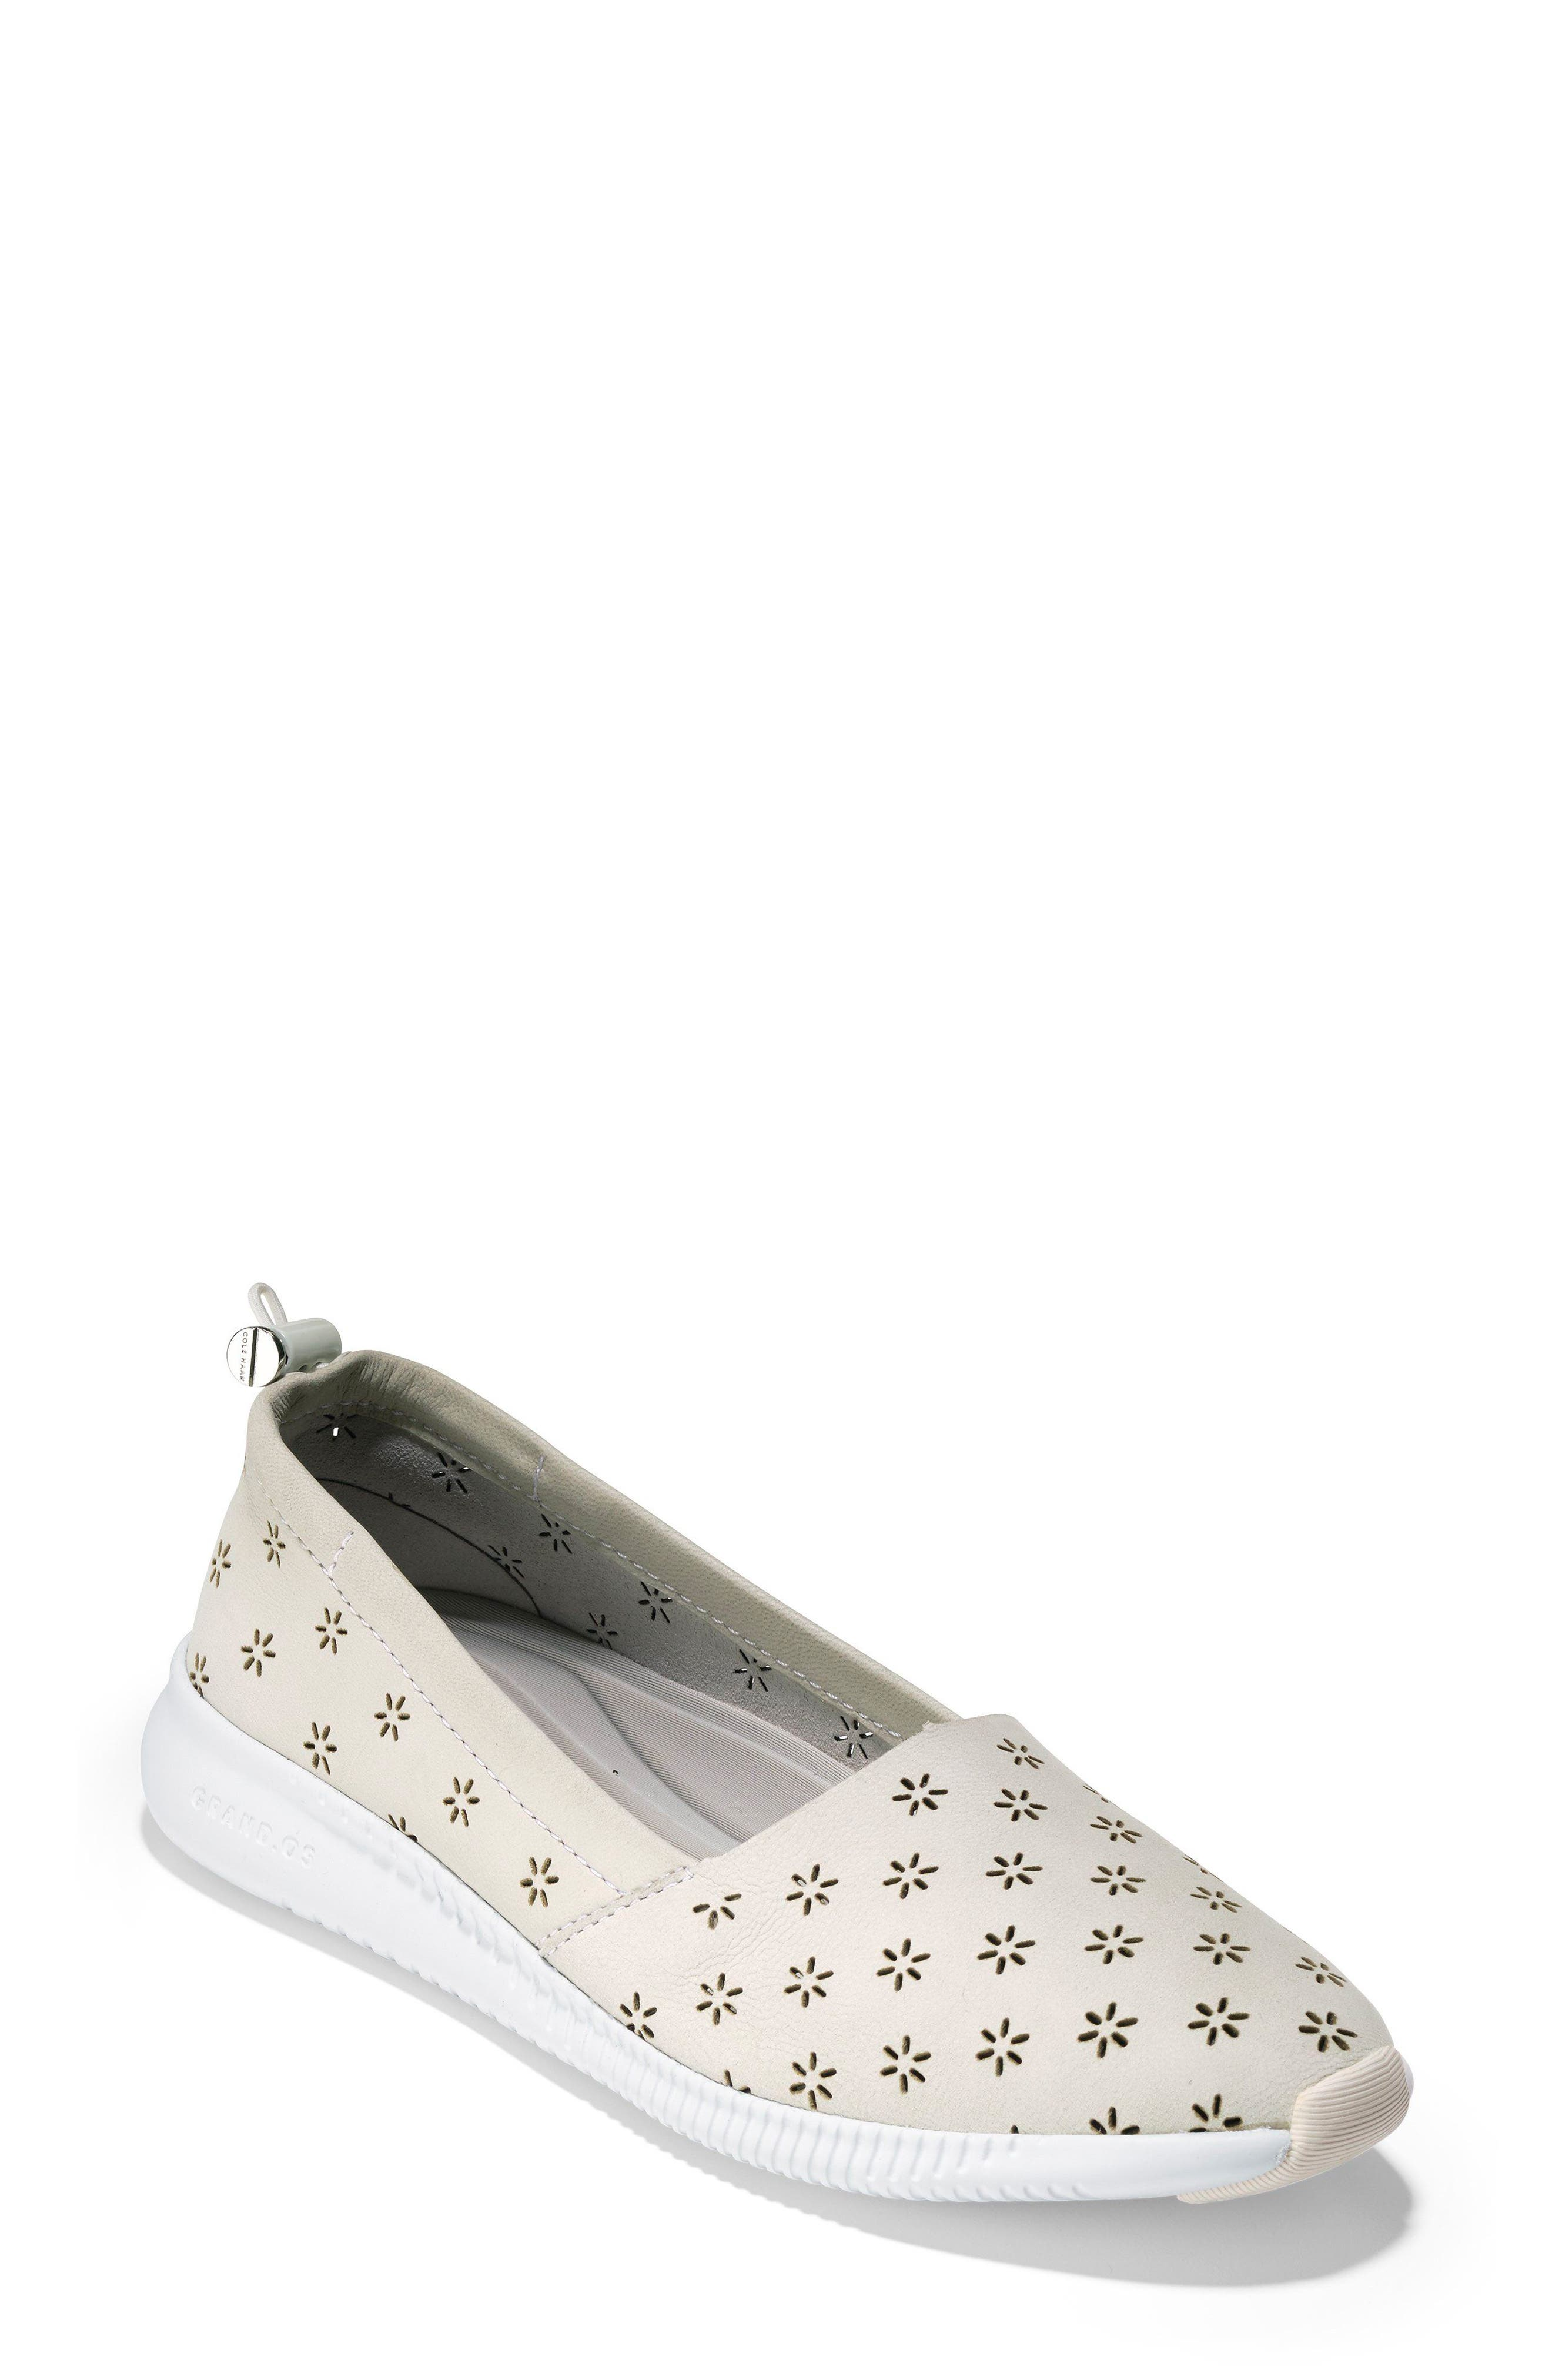 Studiogrand Perforated Slip-on,                             Main thumbnail 3, color,